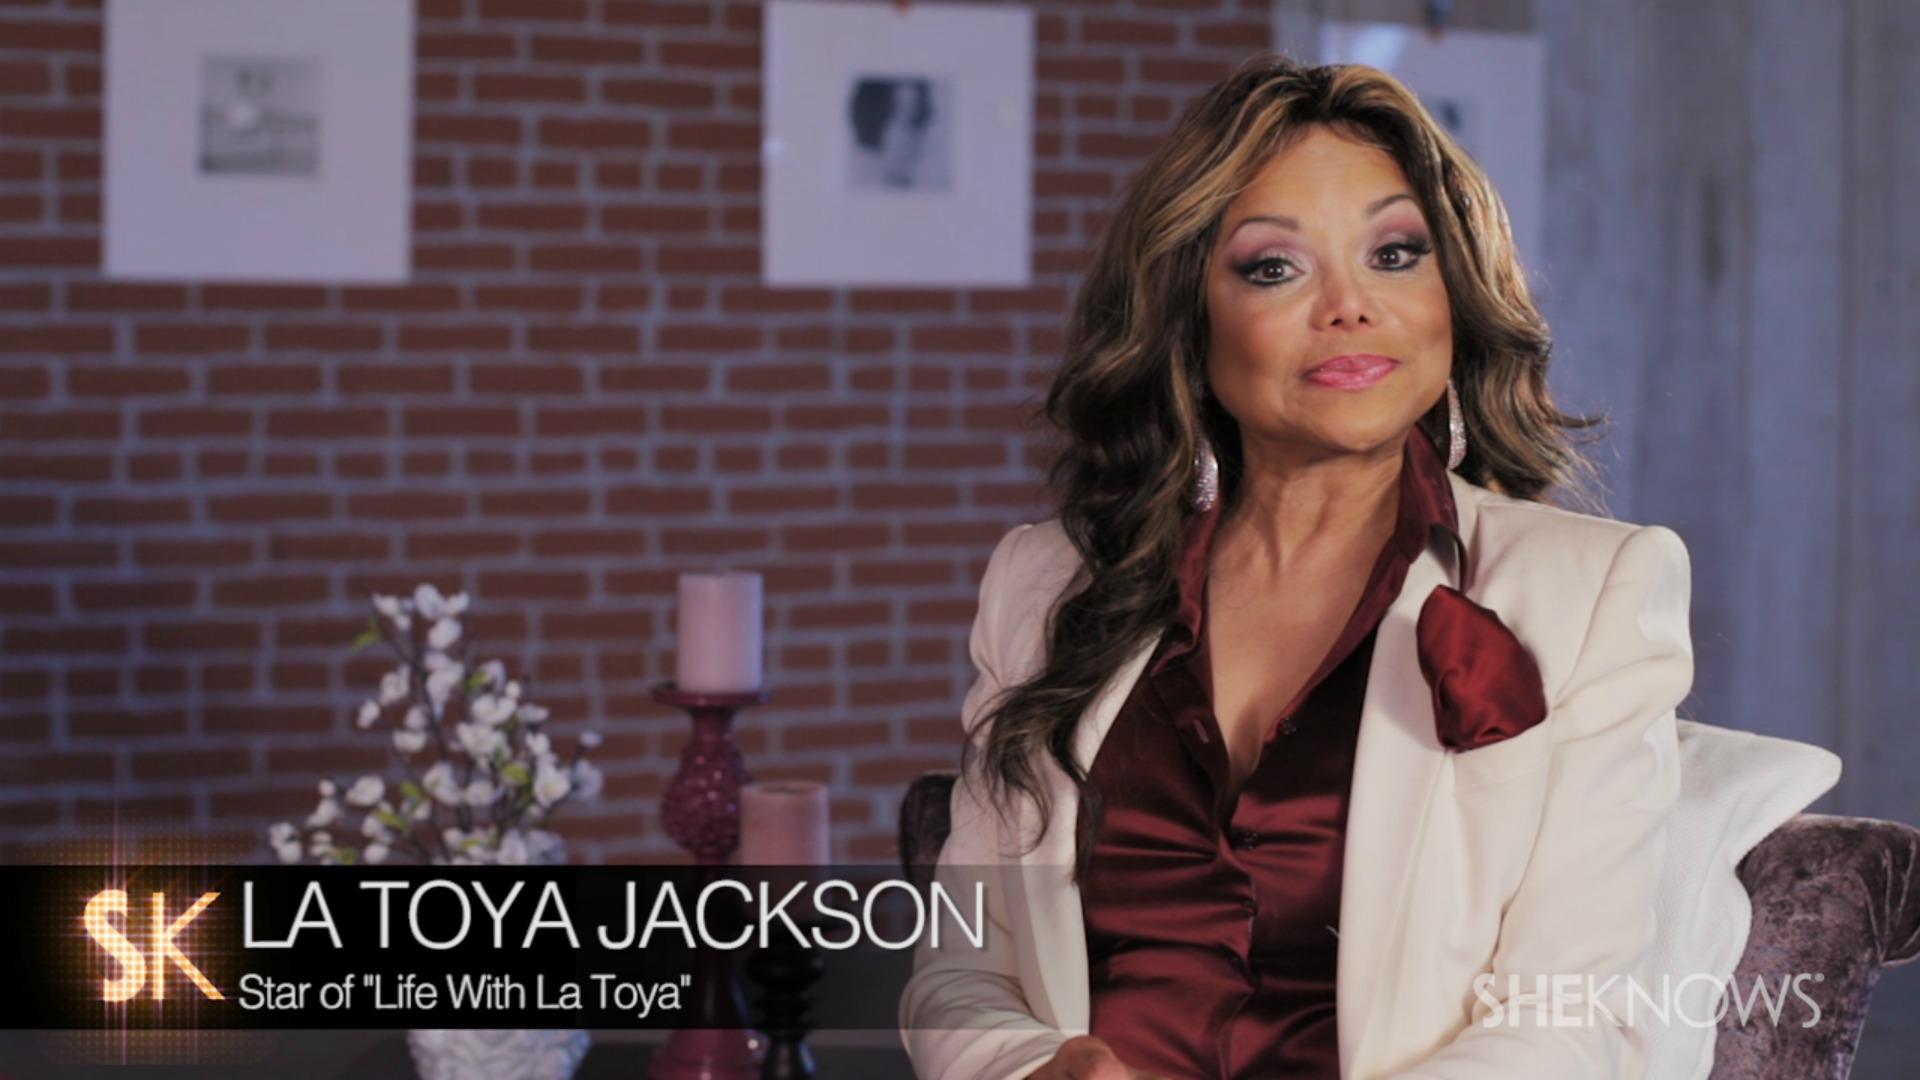 Life Lessons With La Toya: The gift of giving